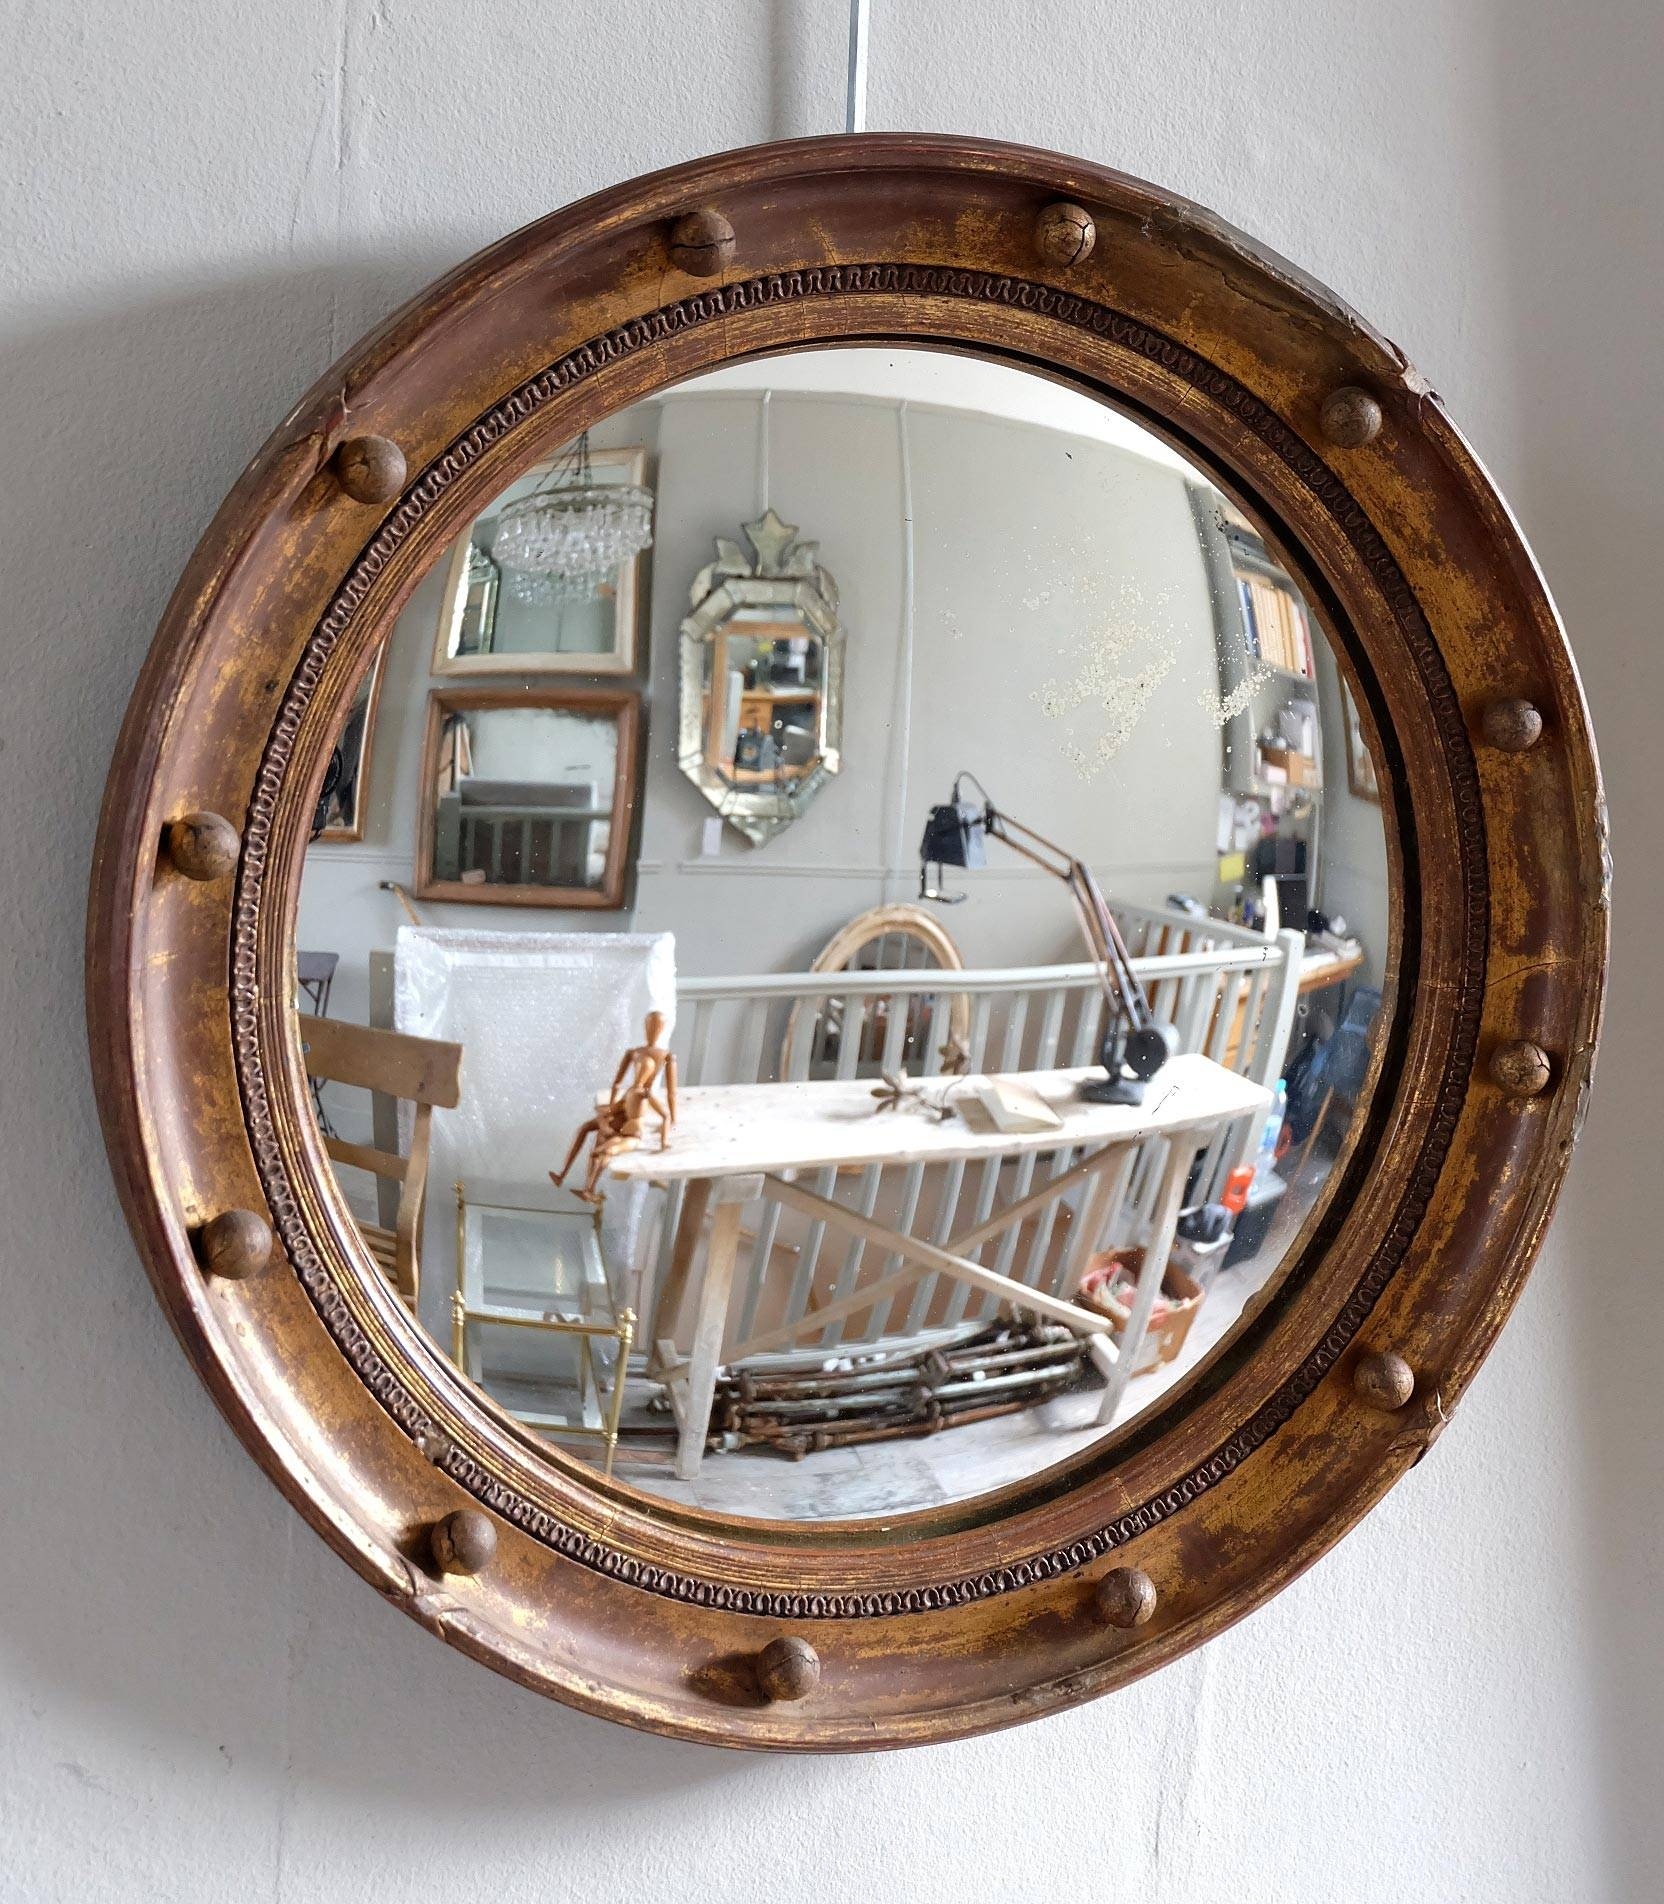 Antique Round Convex Mirror › Puckhaber Decorative Antiques pertaining to Antique Convex Mirrors (Image 2 of 15)